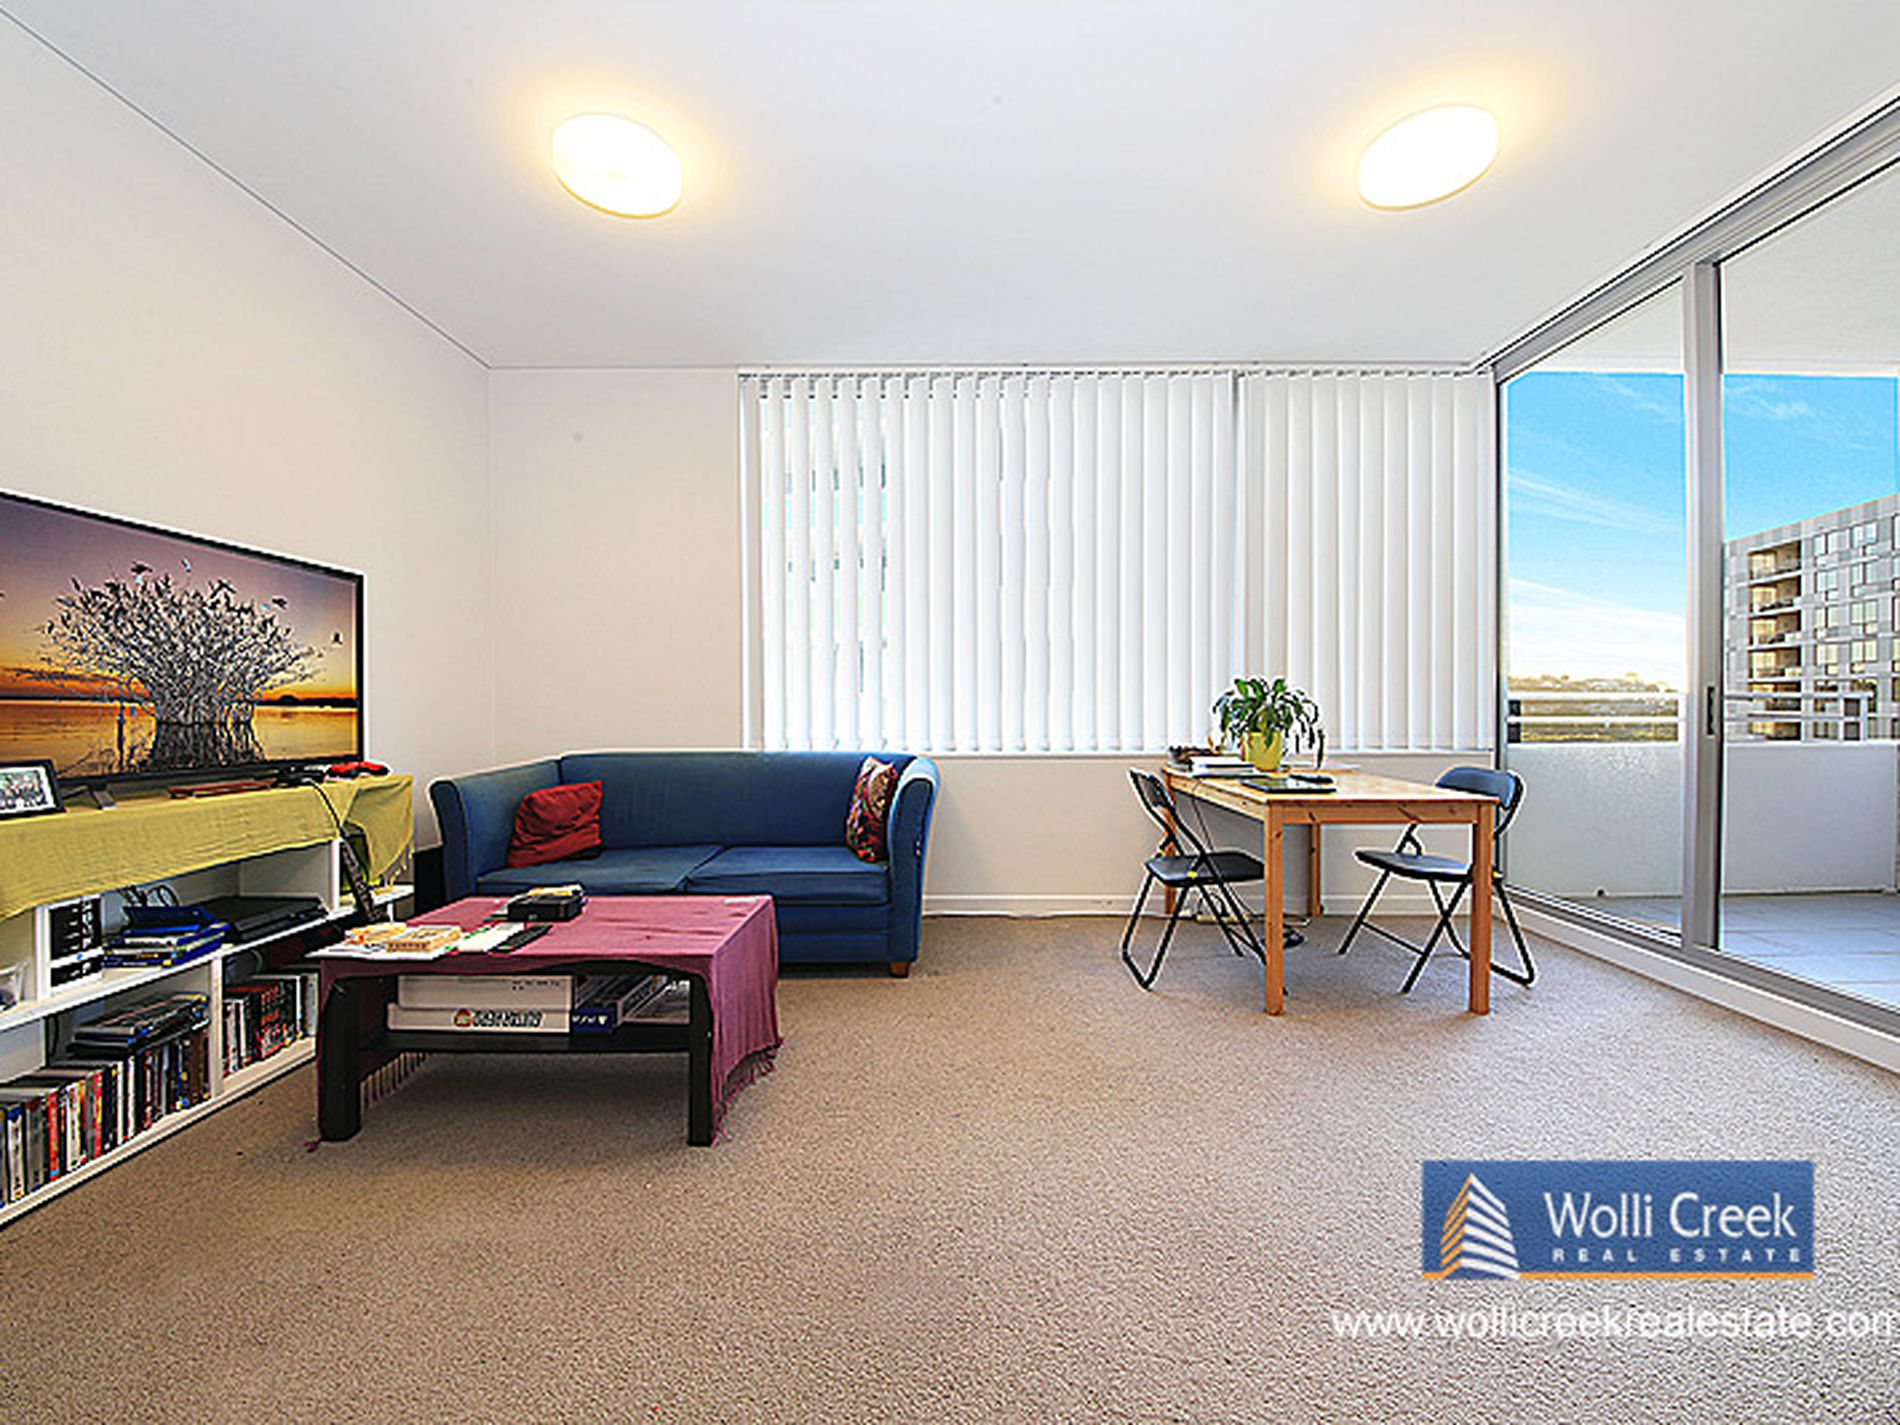 510 / 1 Brodie Spark Dr, Wolli Creek